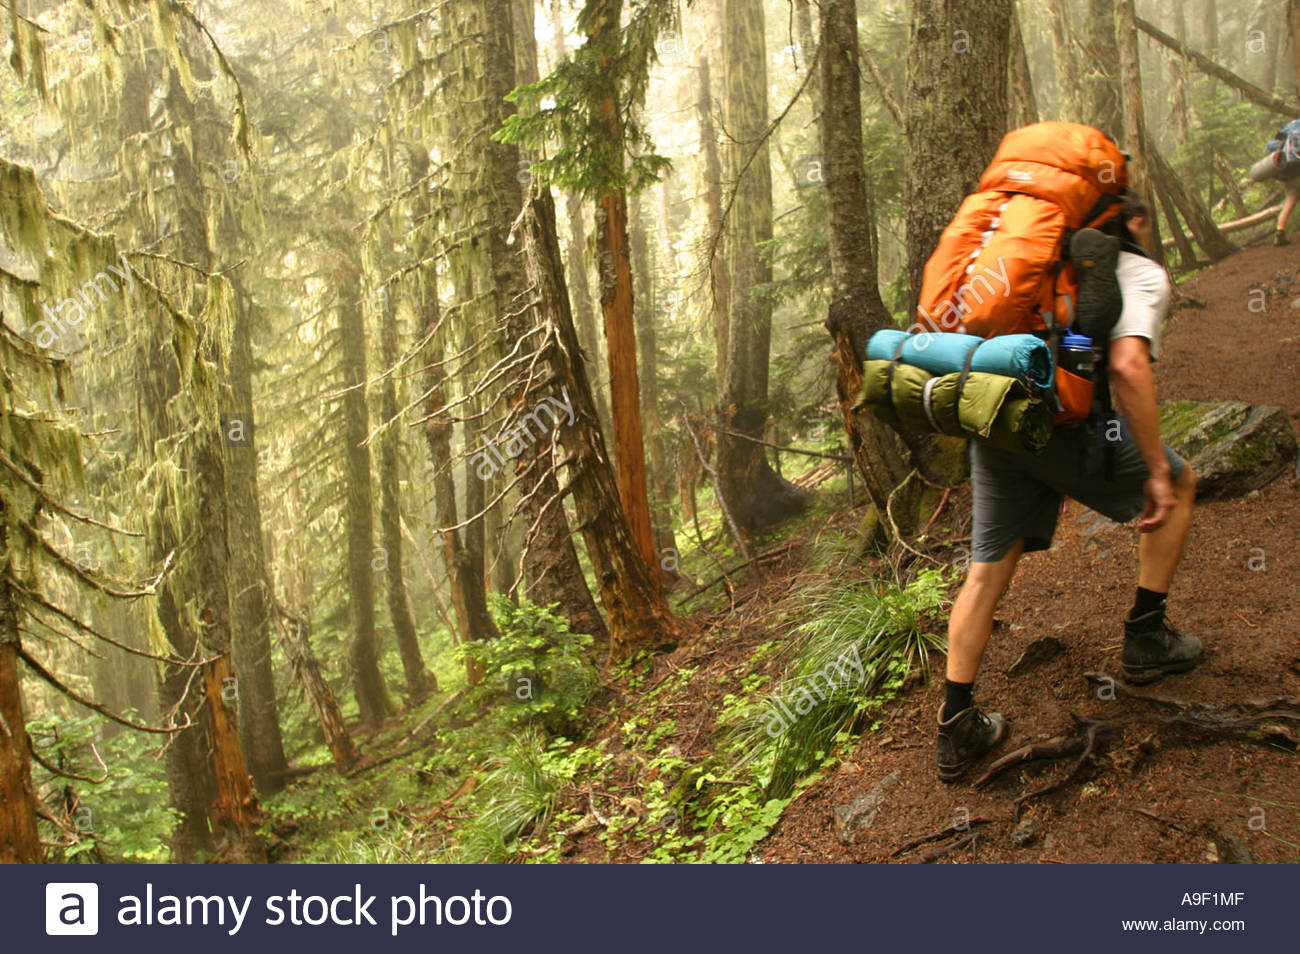 Hiking through the fog and forest Mt Rainier National Park - Stock Image